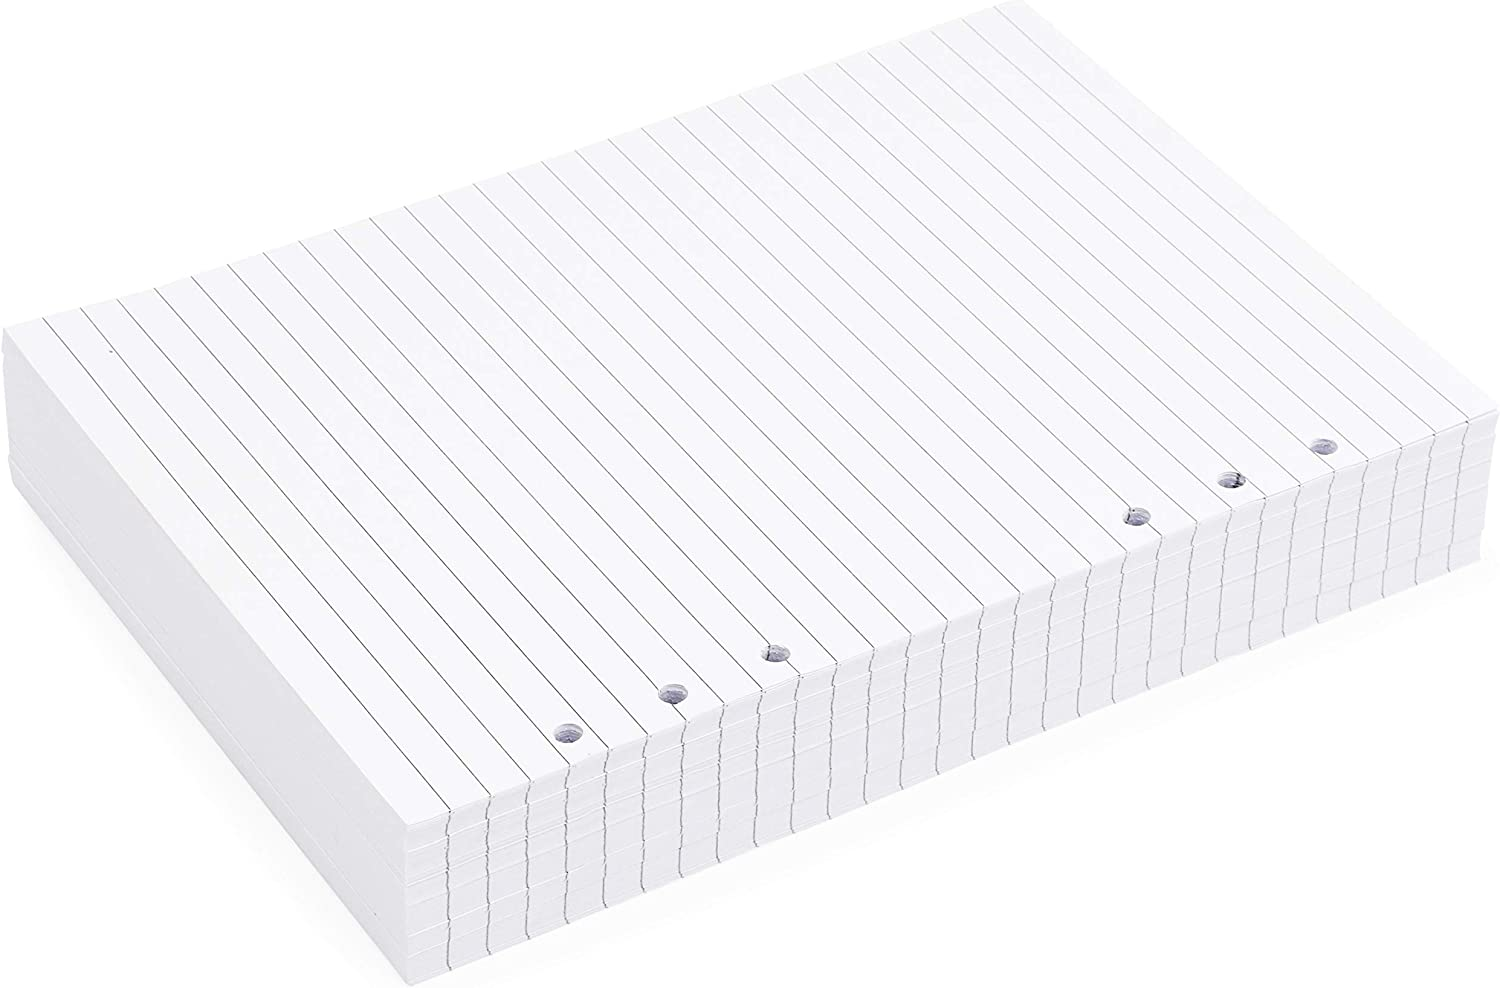 Paper Junkie Lined Filler Paper 6 Hole Punch, A5, White, Pack of 250